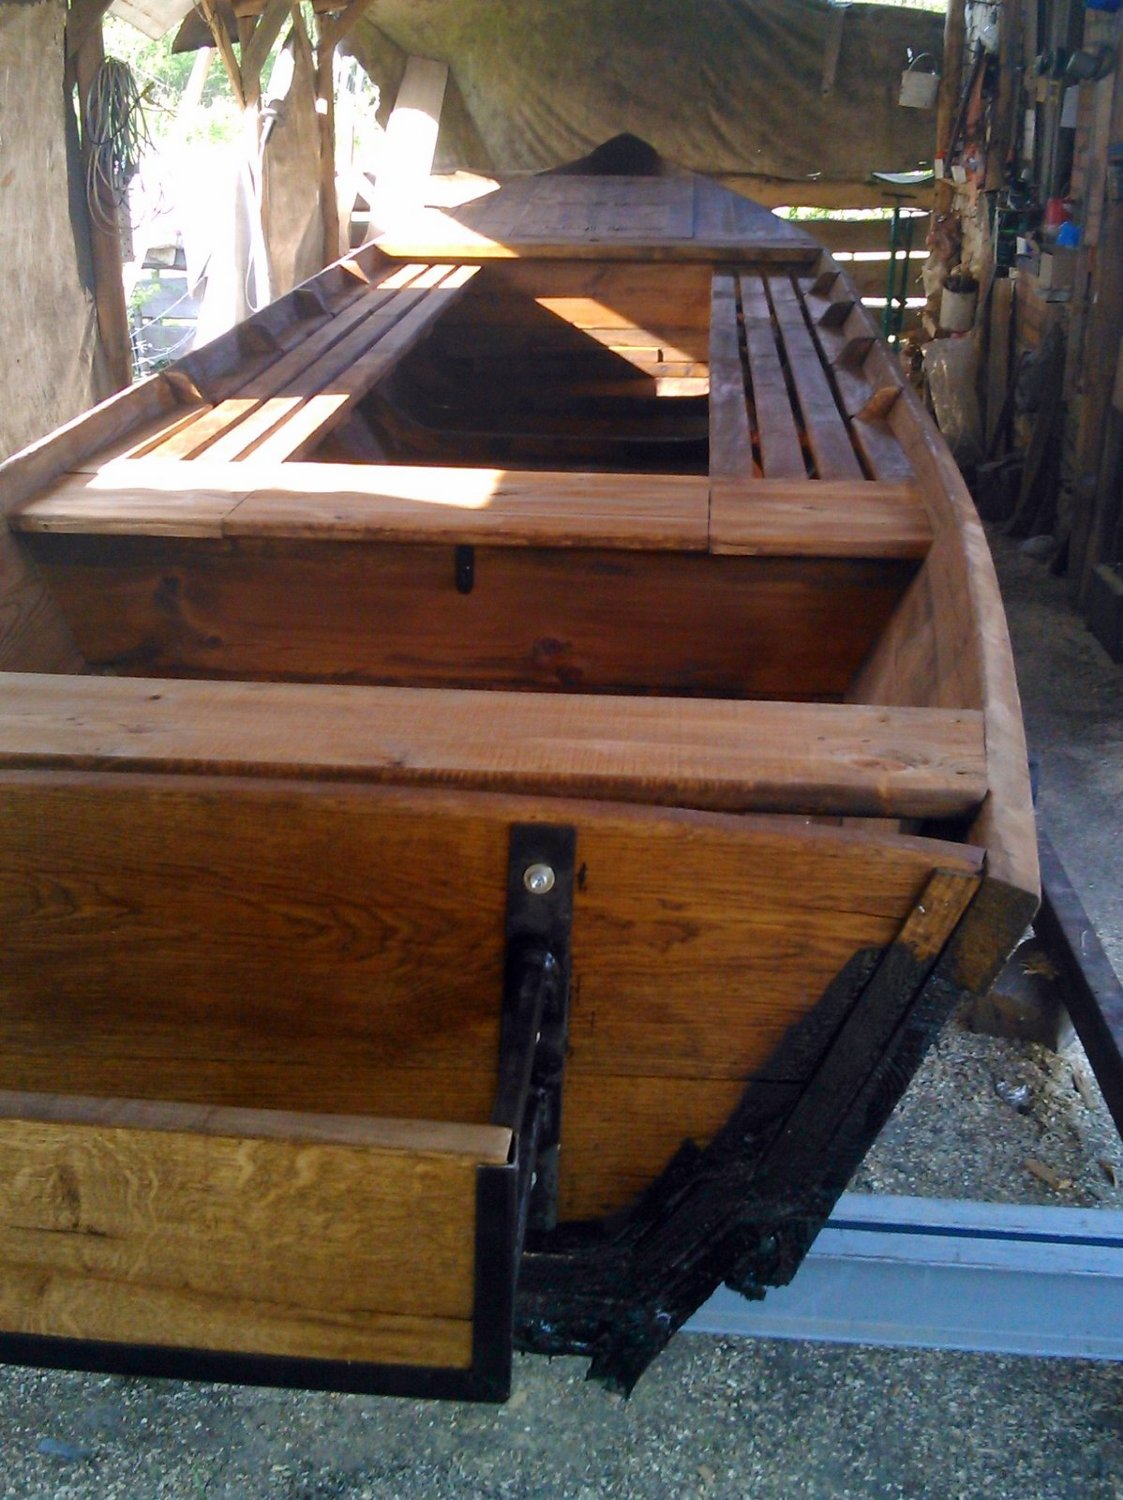 Wooden boat treated with dark tar oil